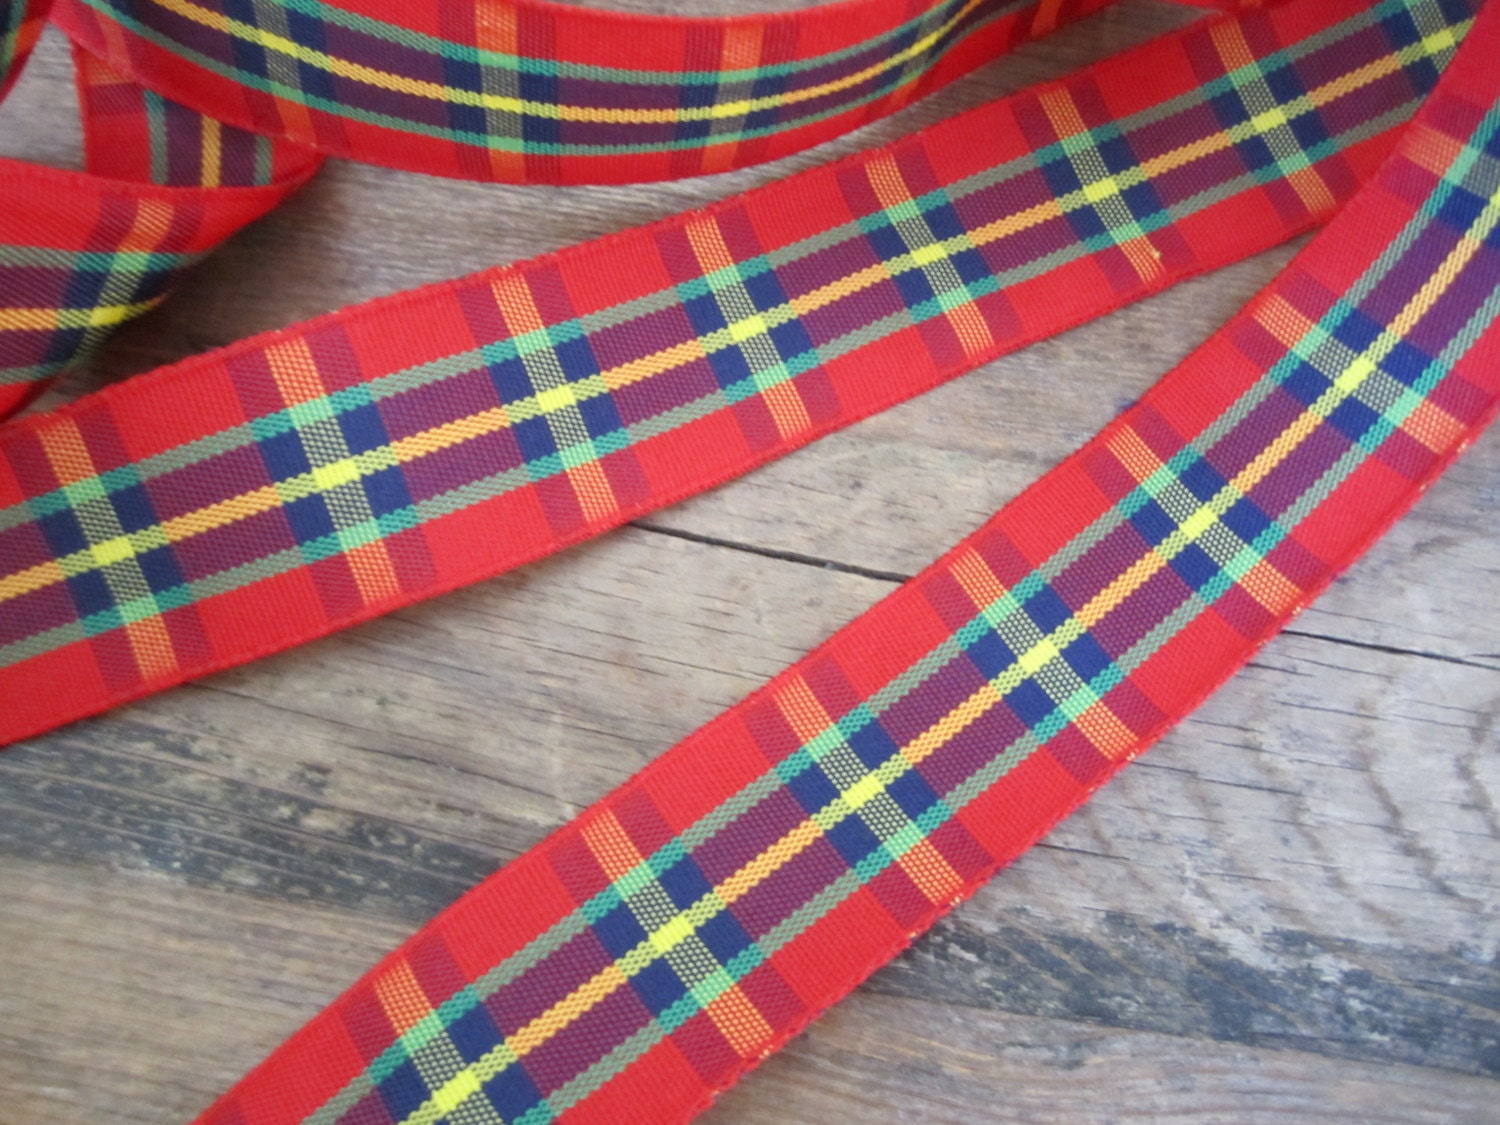 5 yds of red tartan ribbon plaid trim 1 wide red. Black Bedroom Furniture Sets. Home Design Ideas